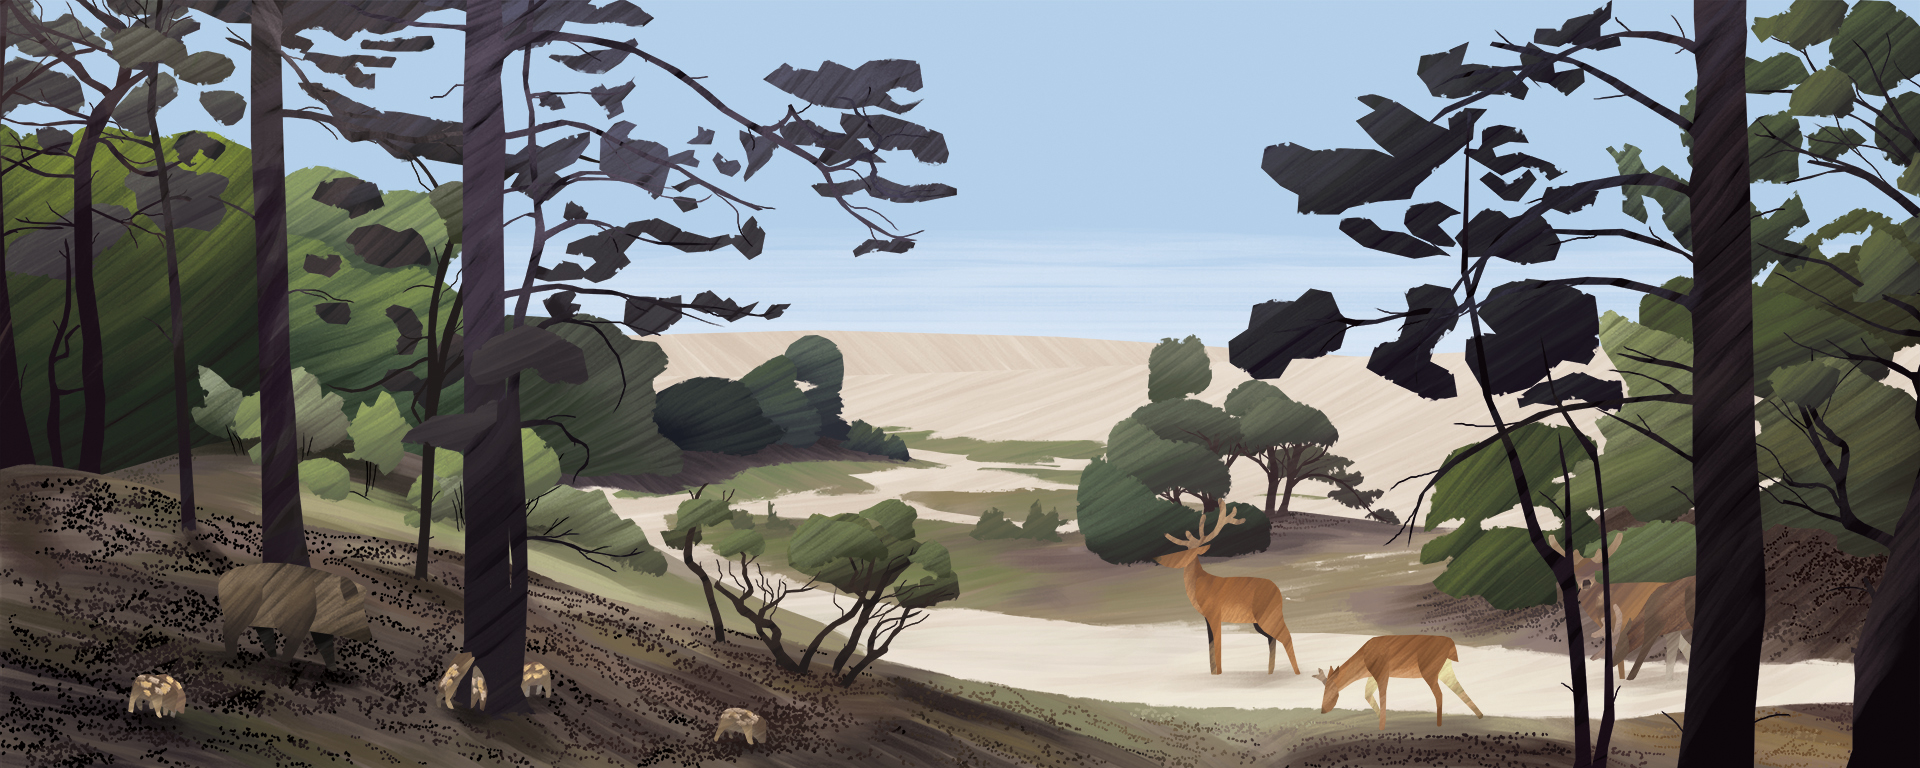 The Dutch Veluwe, personal work